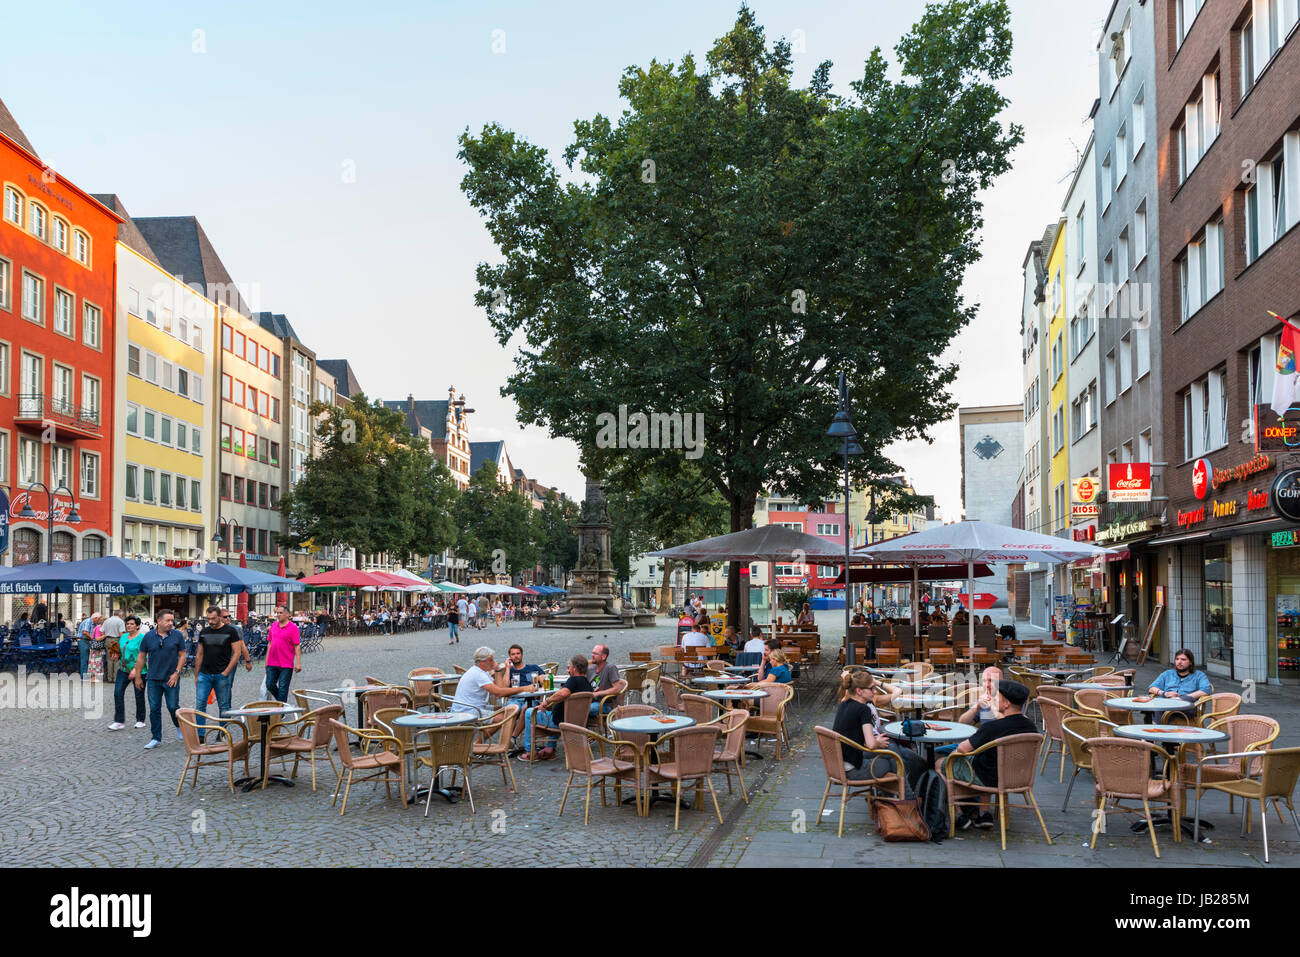 Cafes and bars in the Alter Markt (Old Market Square), Altstadt, Cologne, Germany - Stock Image